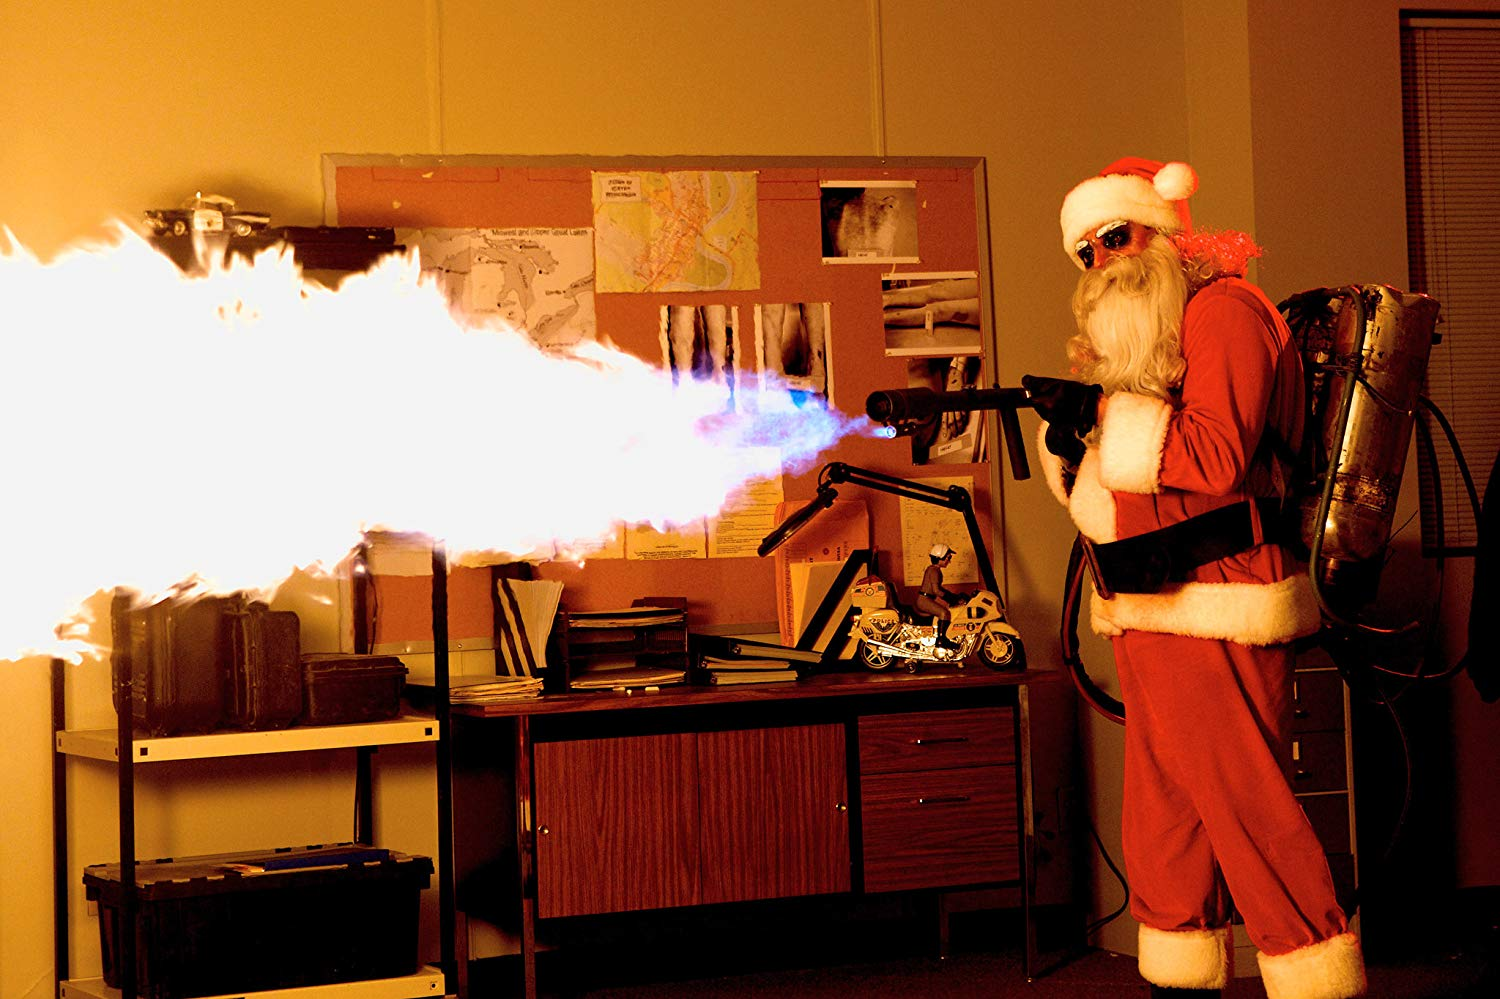 Psycho Santa with a flamethrower in Silent Night (2012)